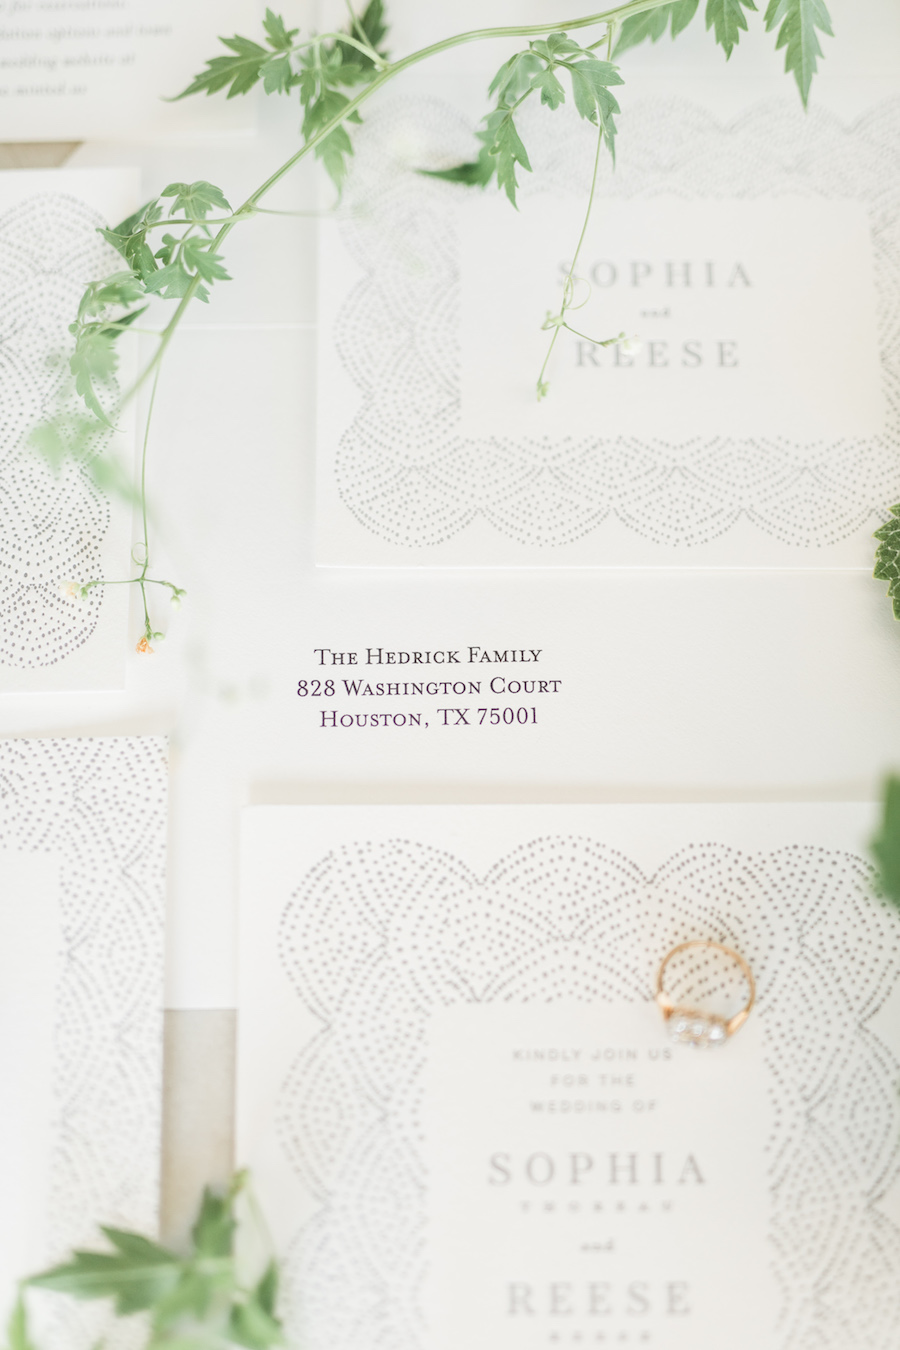 ROQUE Summer Styled Shoot Real Simple Minted Invitations22.jpg